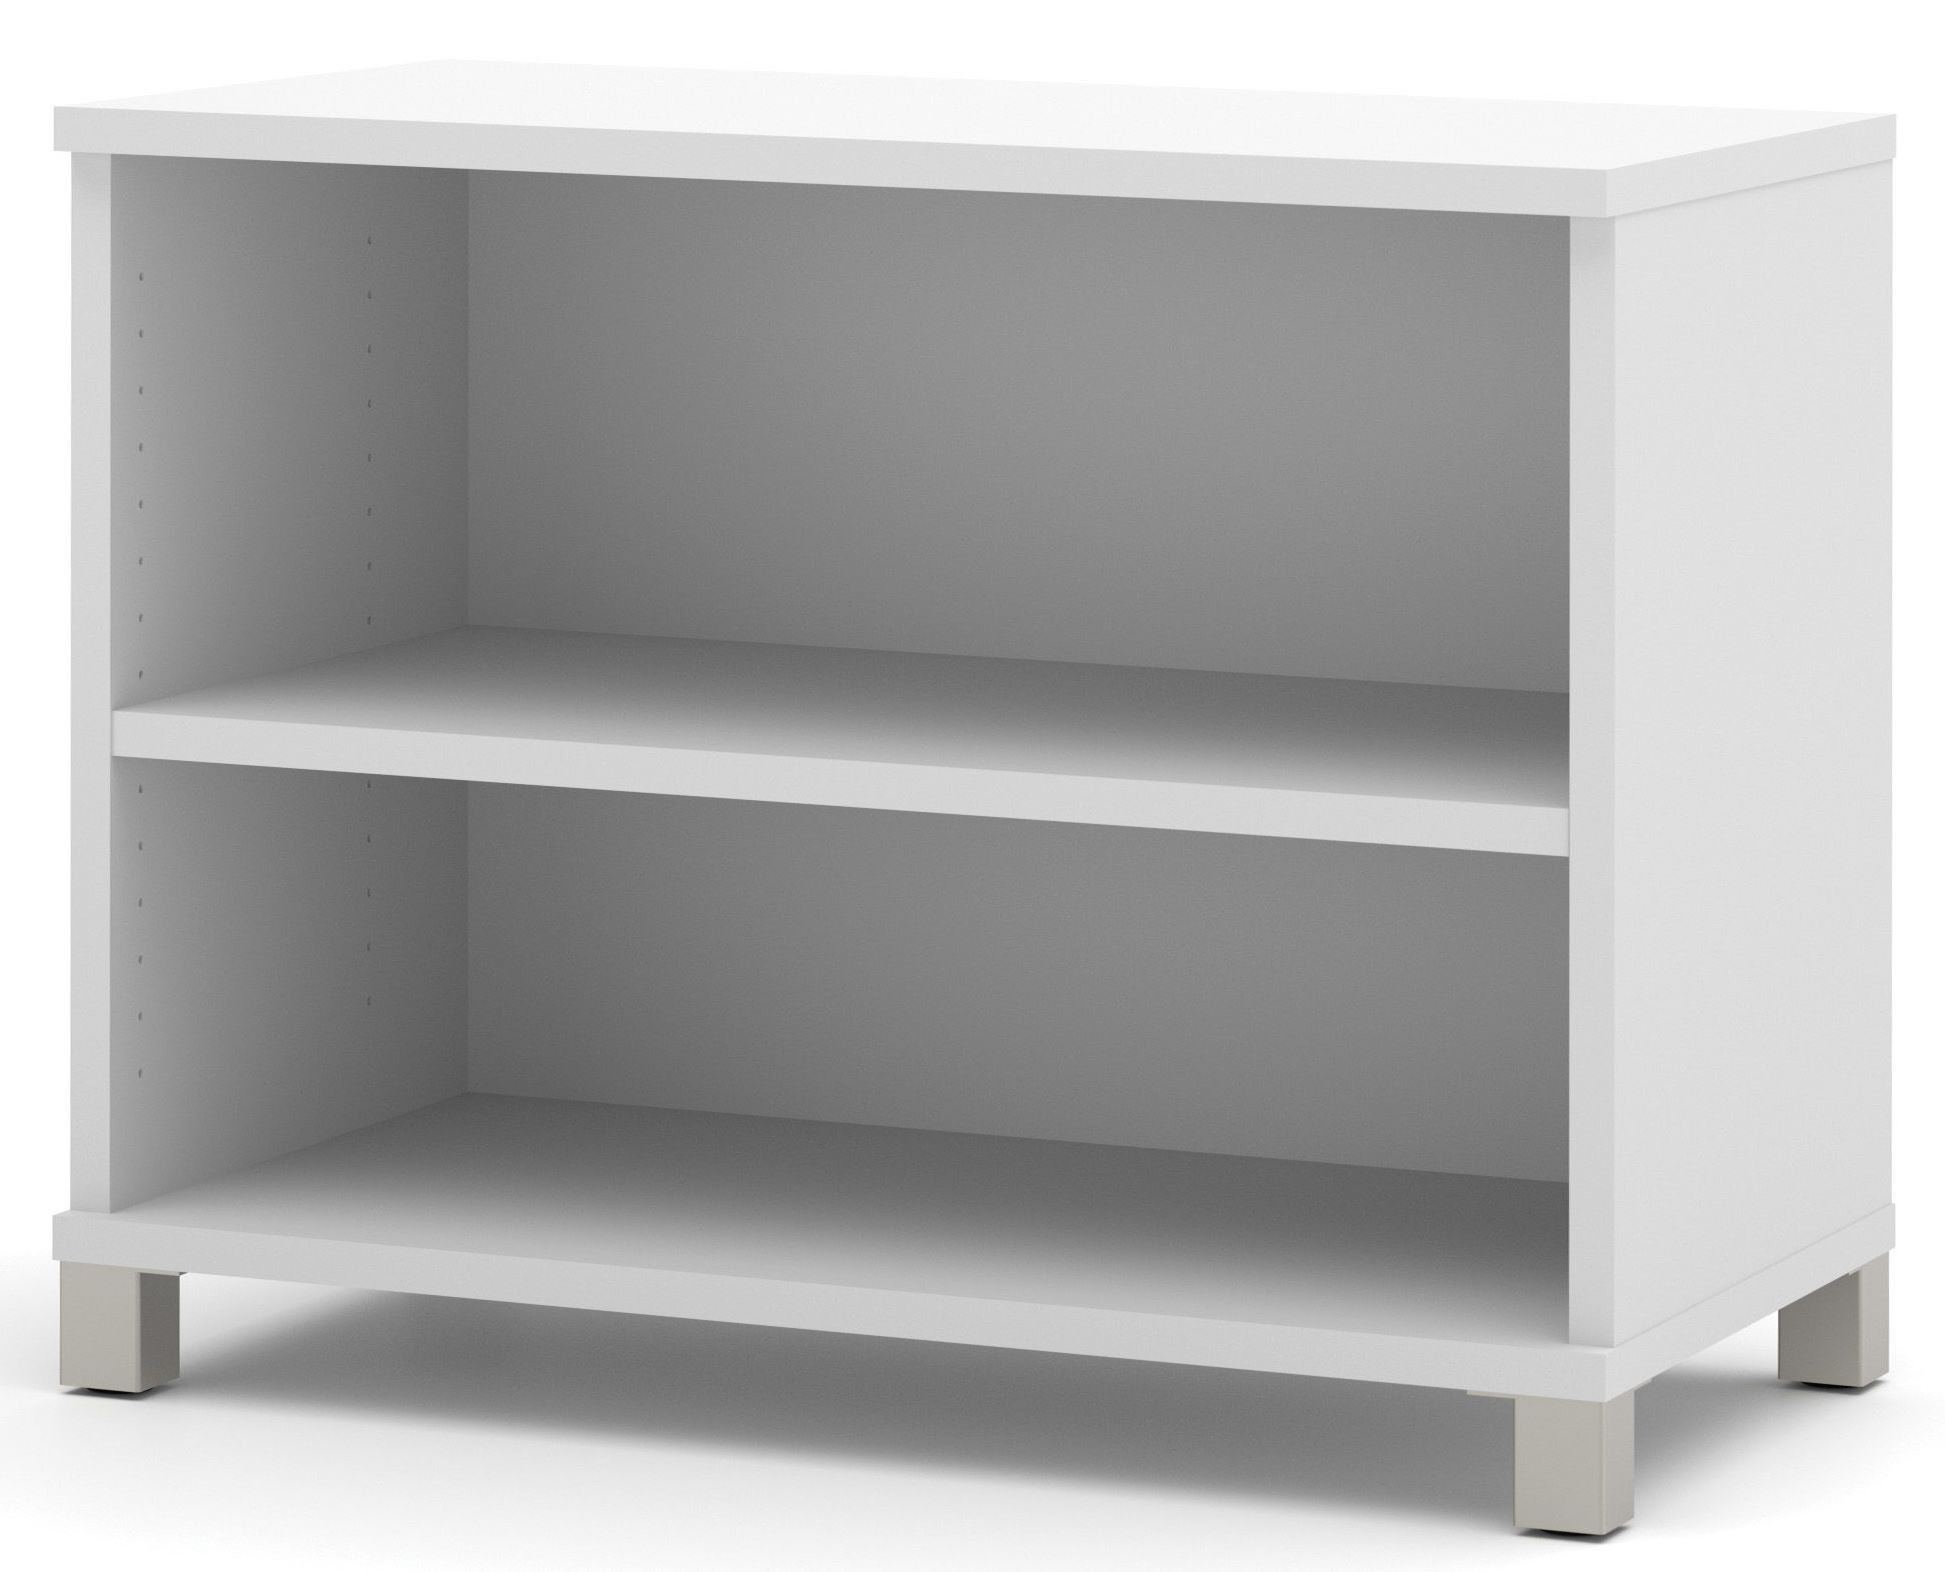 pro linea white 2 shelf bookcase from bestar 120160 1117. Black Bedroom Furniture Sets. Home Design Ideas